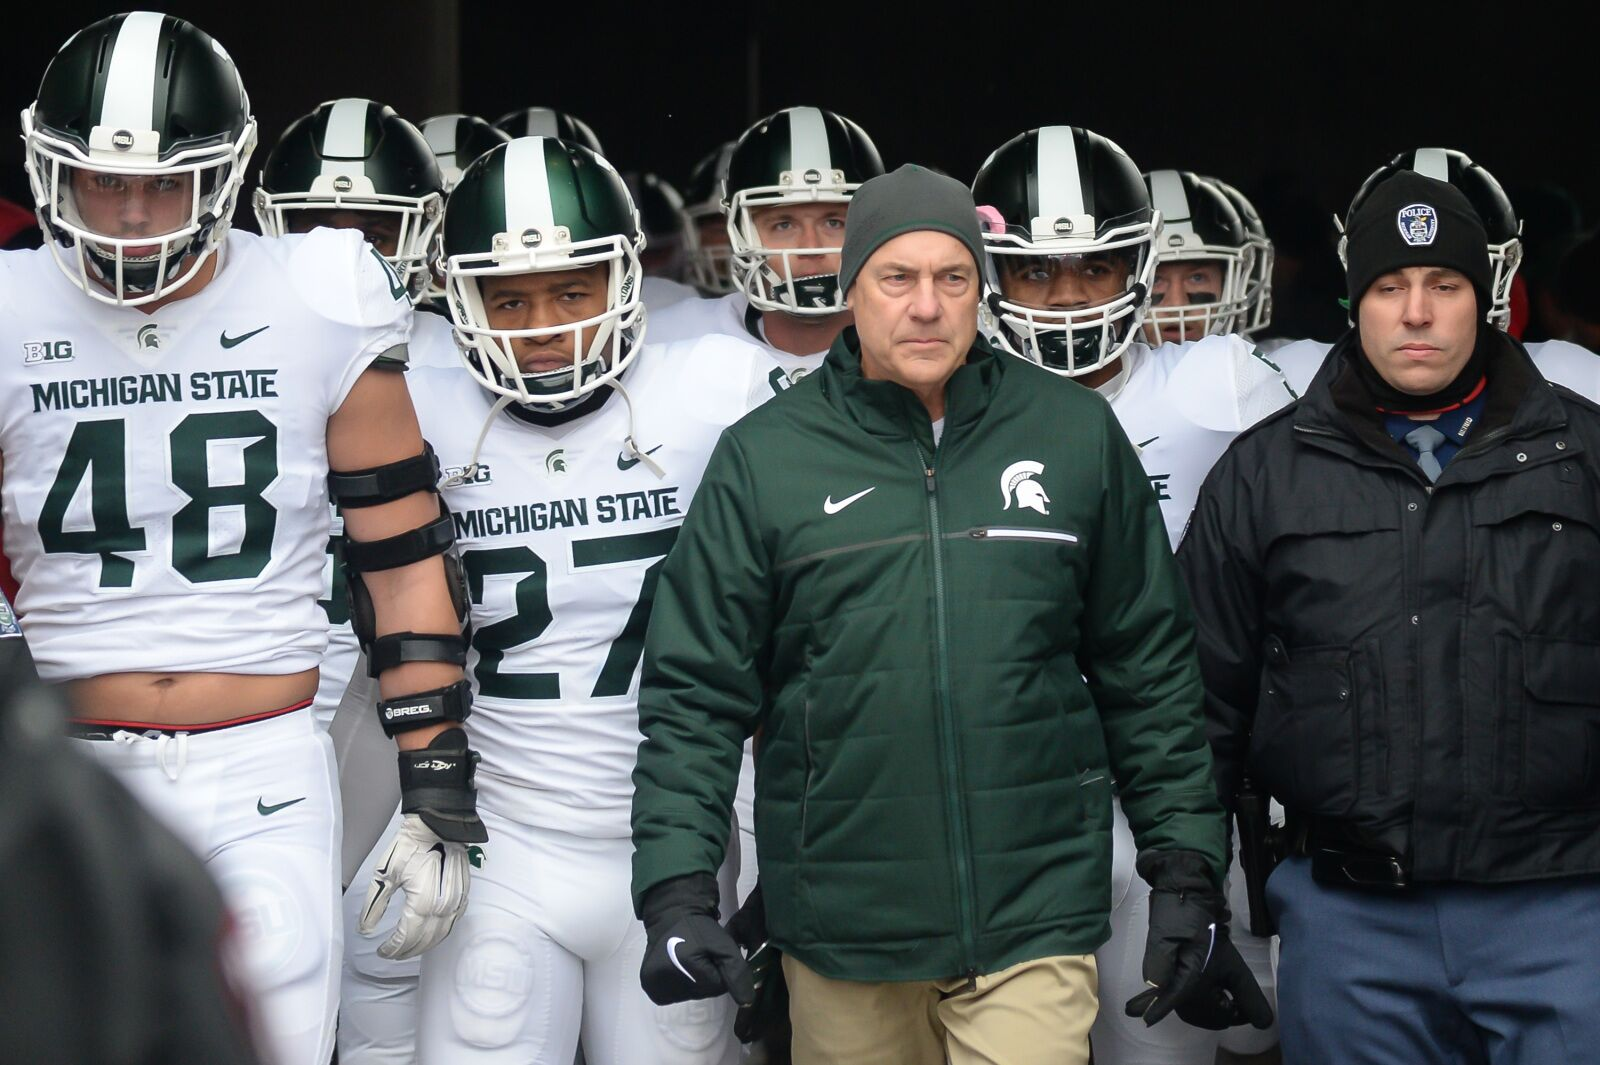 Michigan State Football: Is Anthony Williams Jr. the answer at RB?